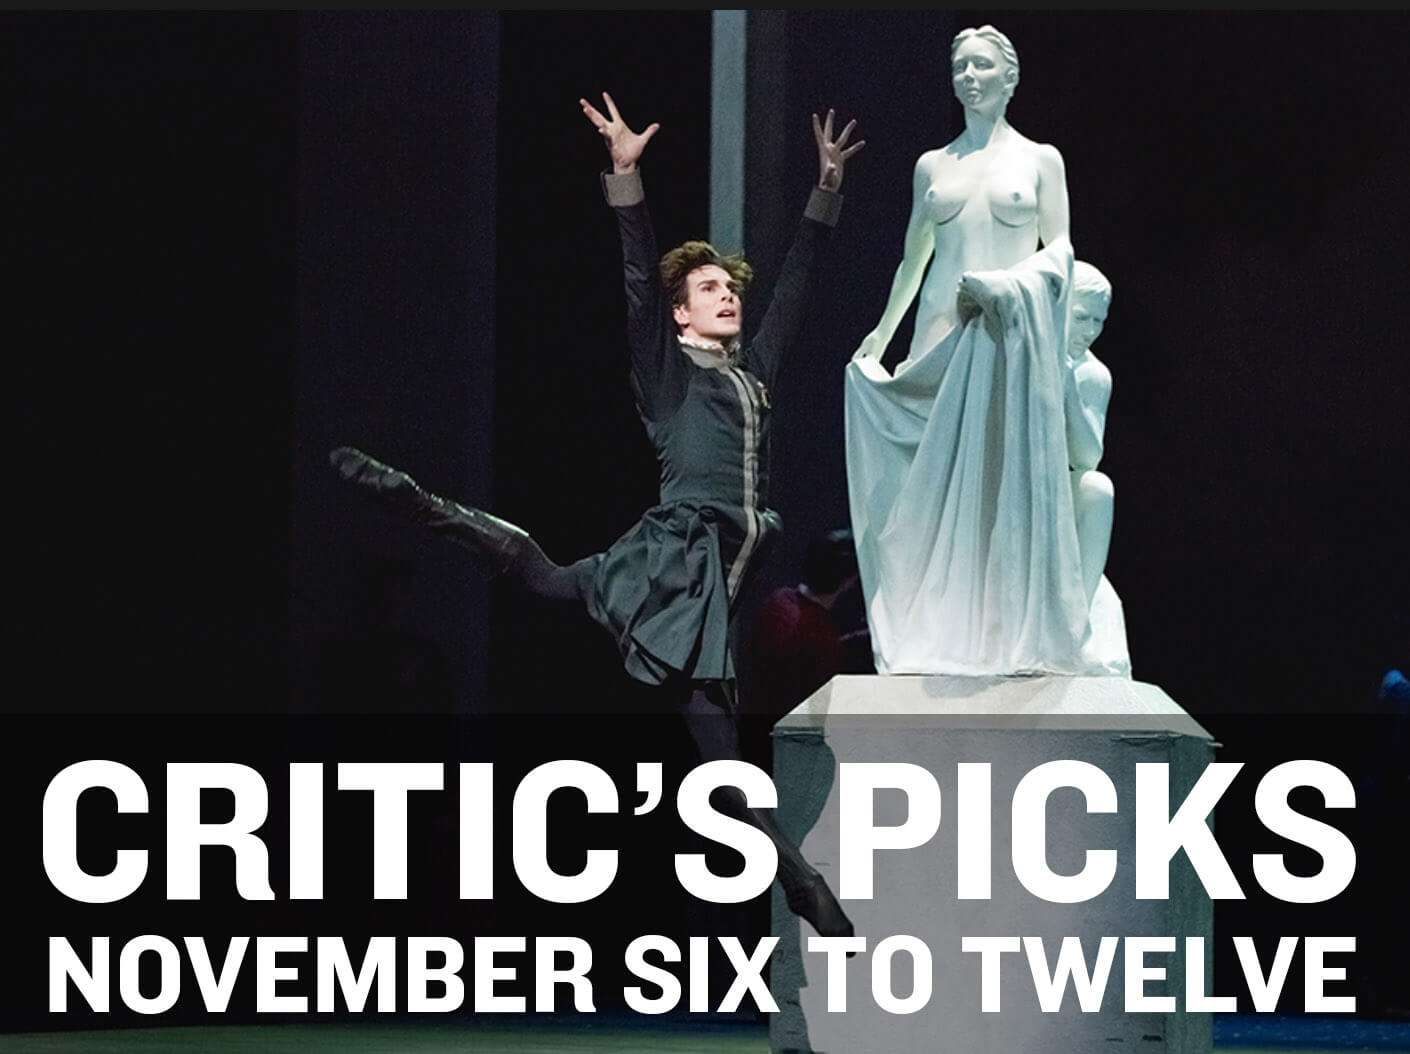 Classical music and opera events happening in and around Toronto for the week of Nov. 6 to 12.